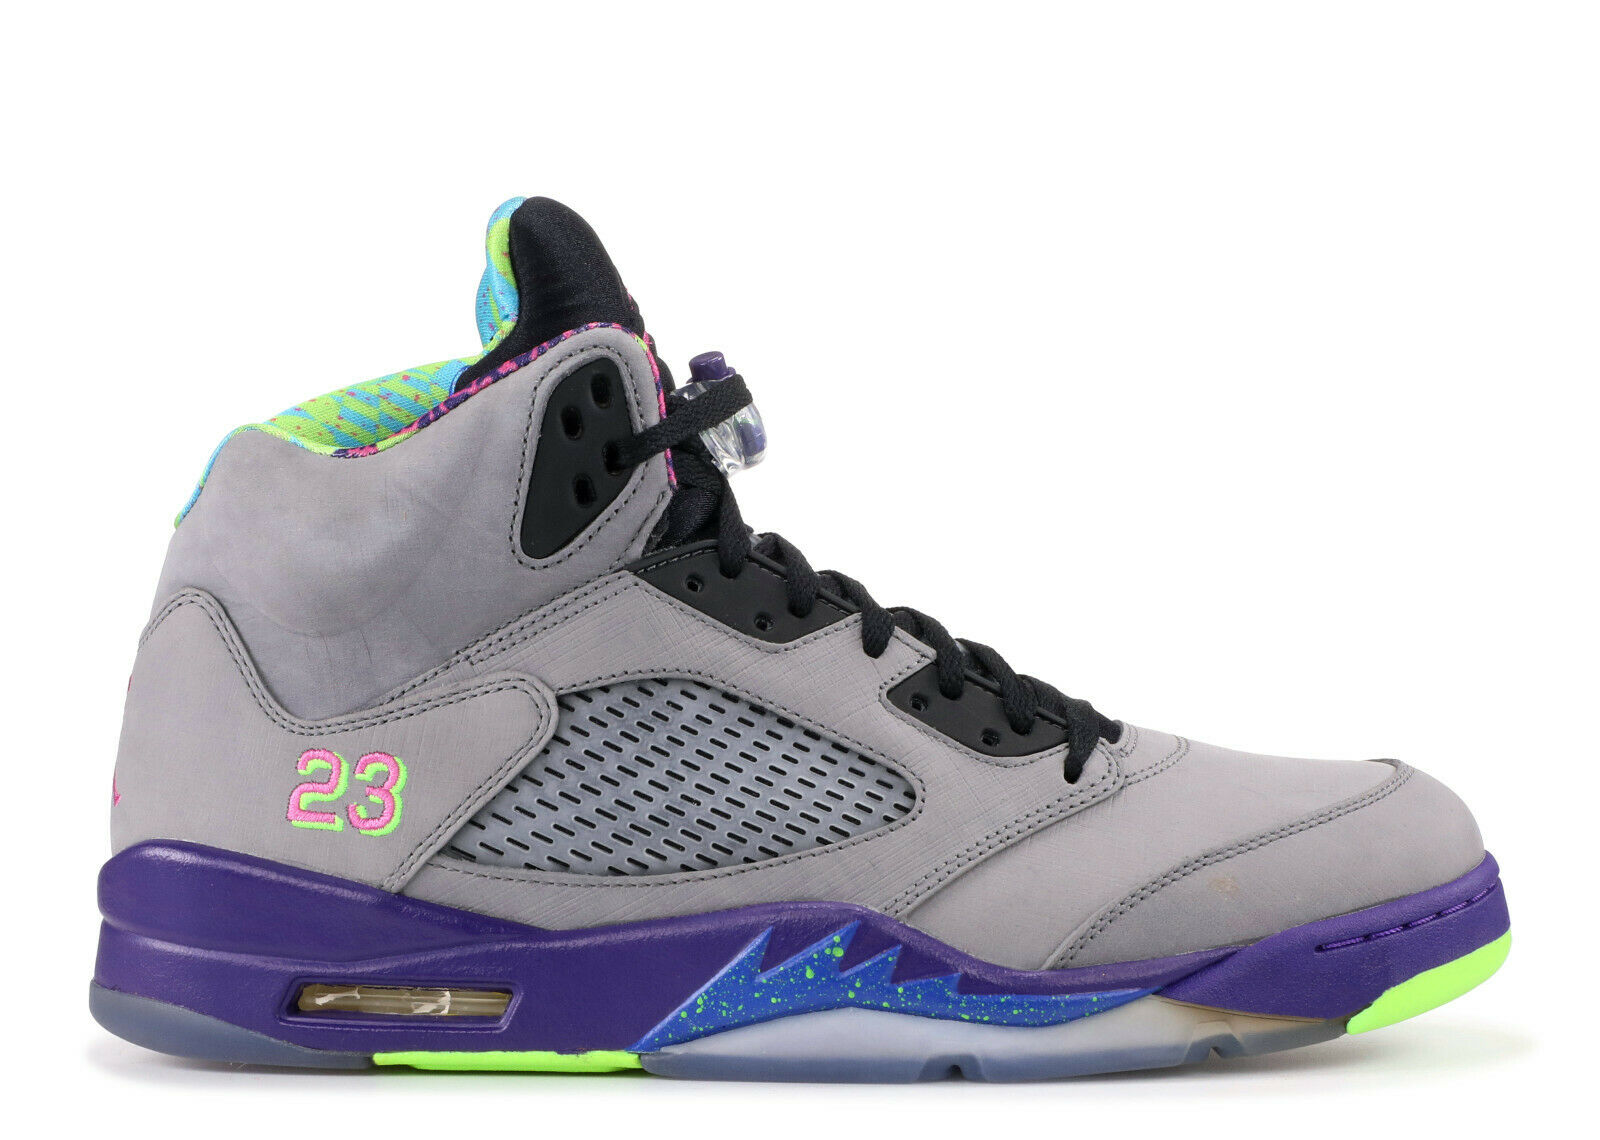 Men's Brand New Air Jordan 5 Retro Bel Air Athletic Sneakers [621958 090]